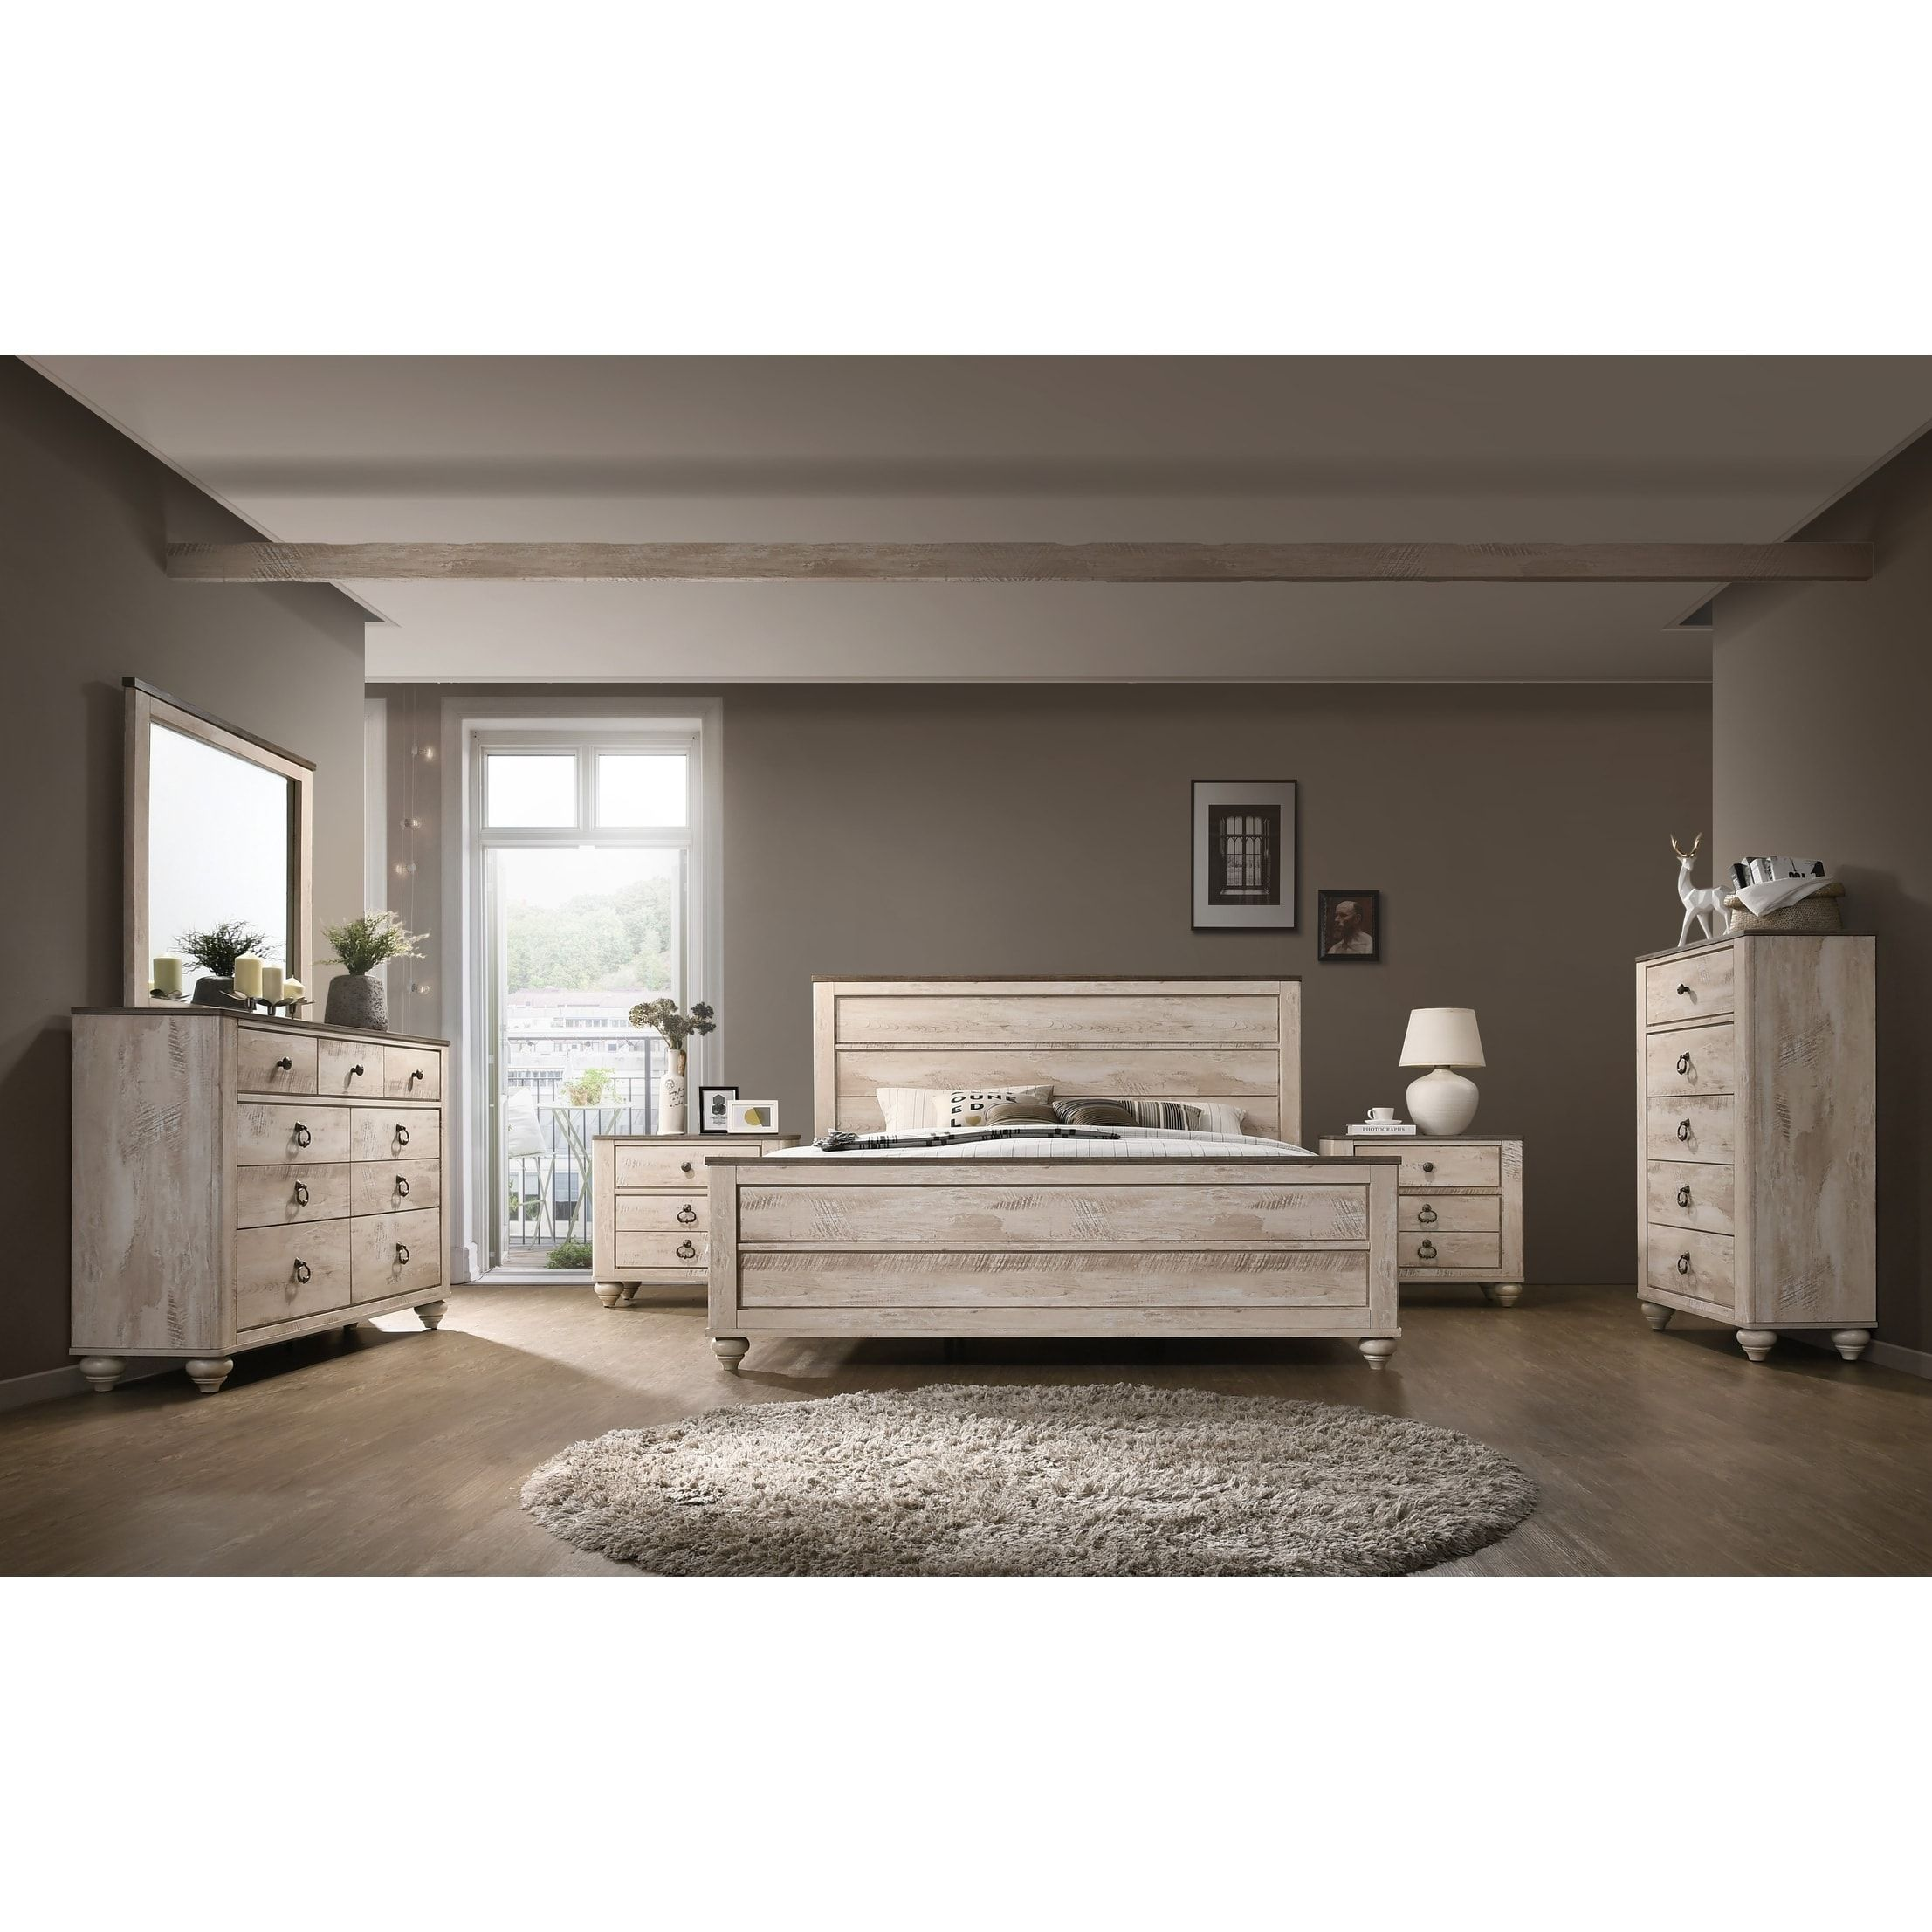 Imerland Contemporary White Wash Finish 6 Piece Bedroom Set King King Bedroom Sets Bedroom Set Bedroom Sets